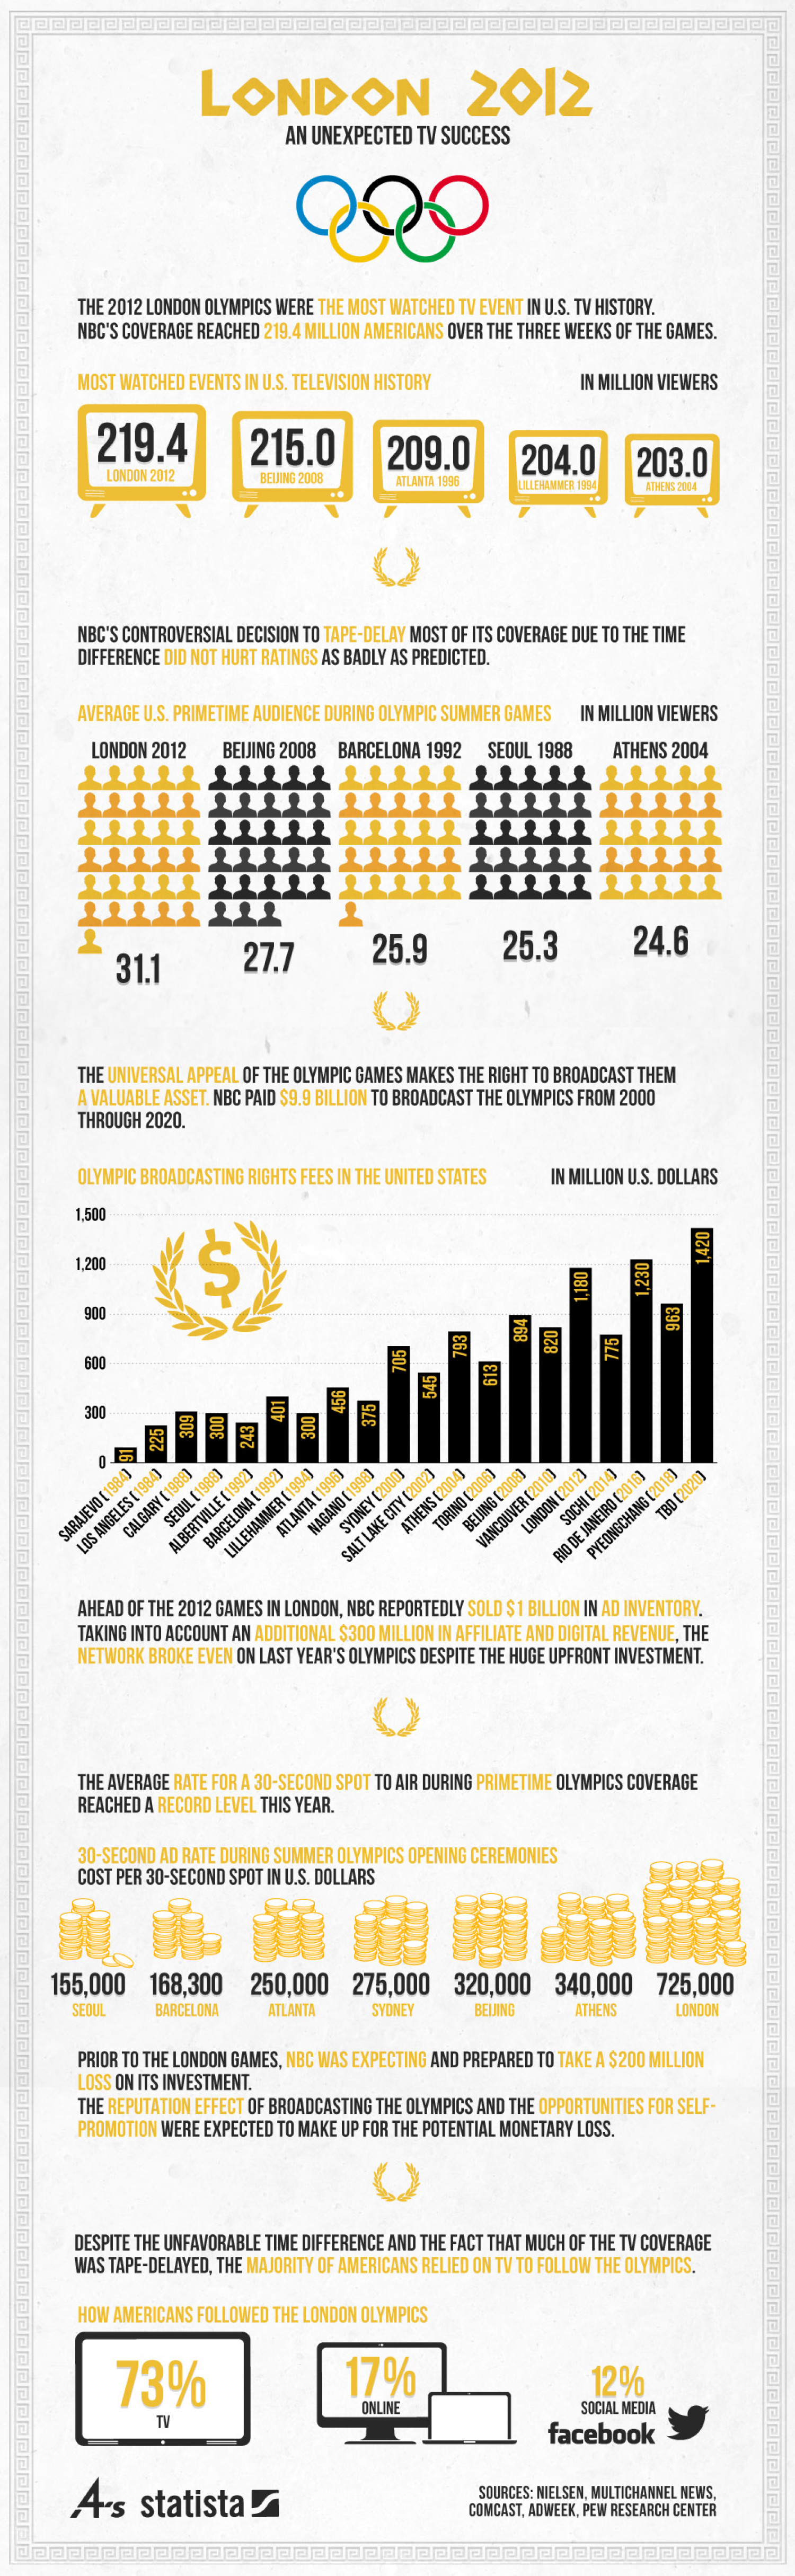 London 2012 - An Unexpected TV Success Infographic